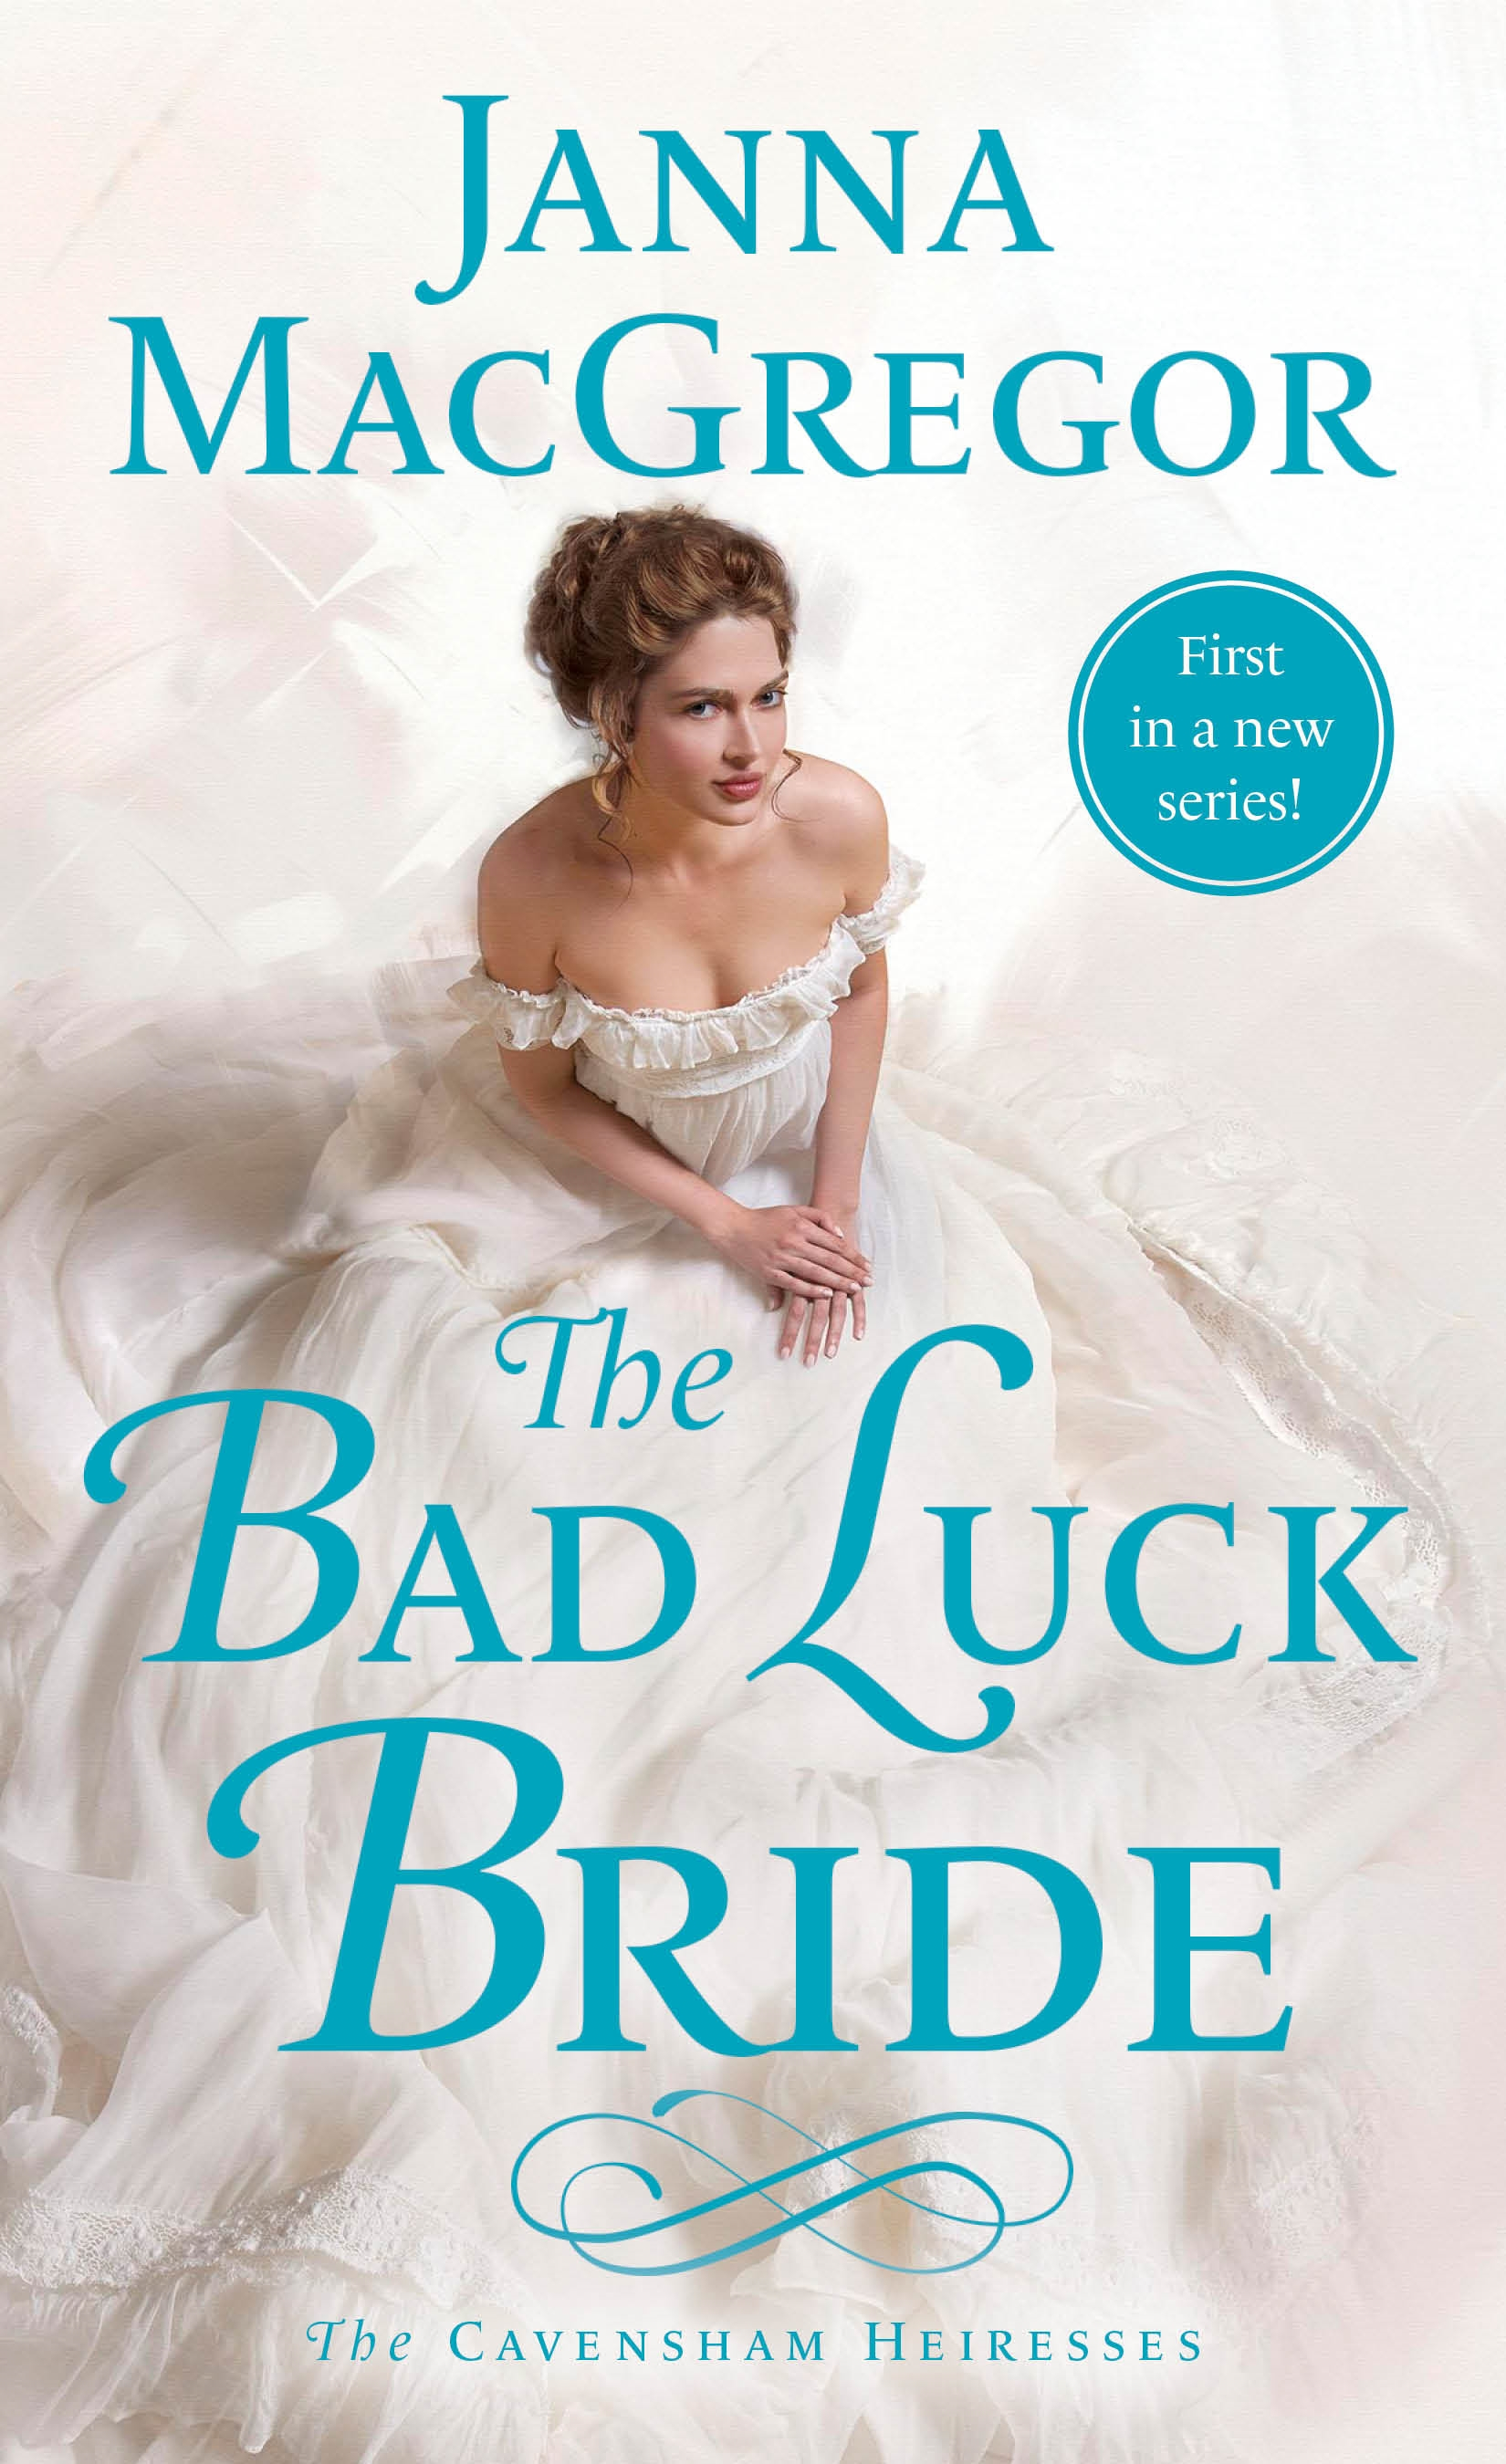 The Bad Luck Bride